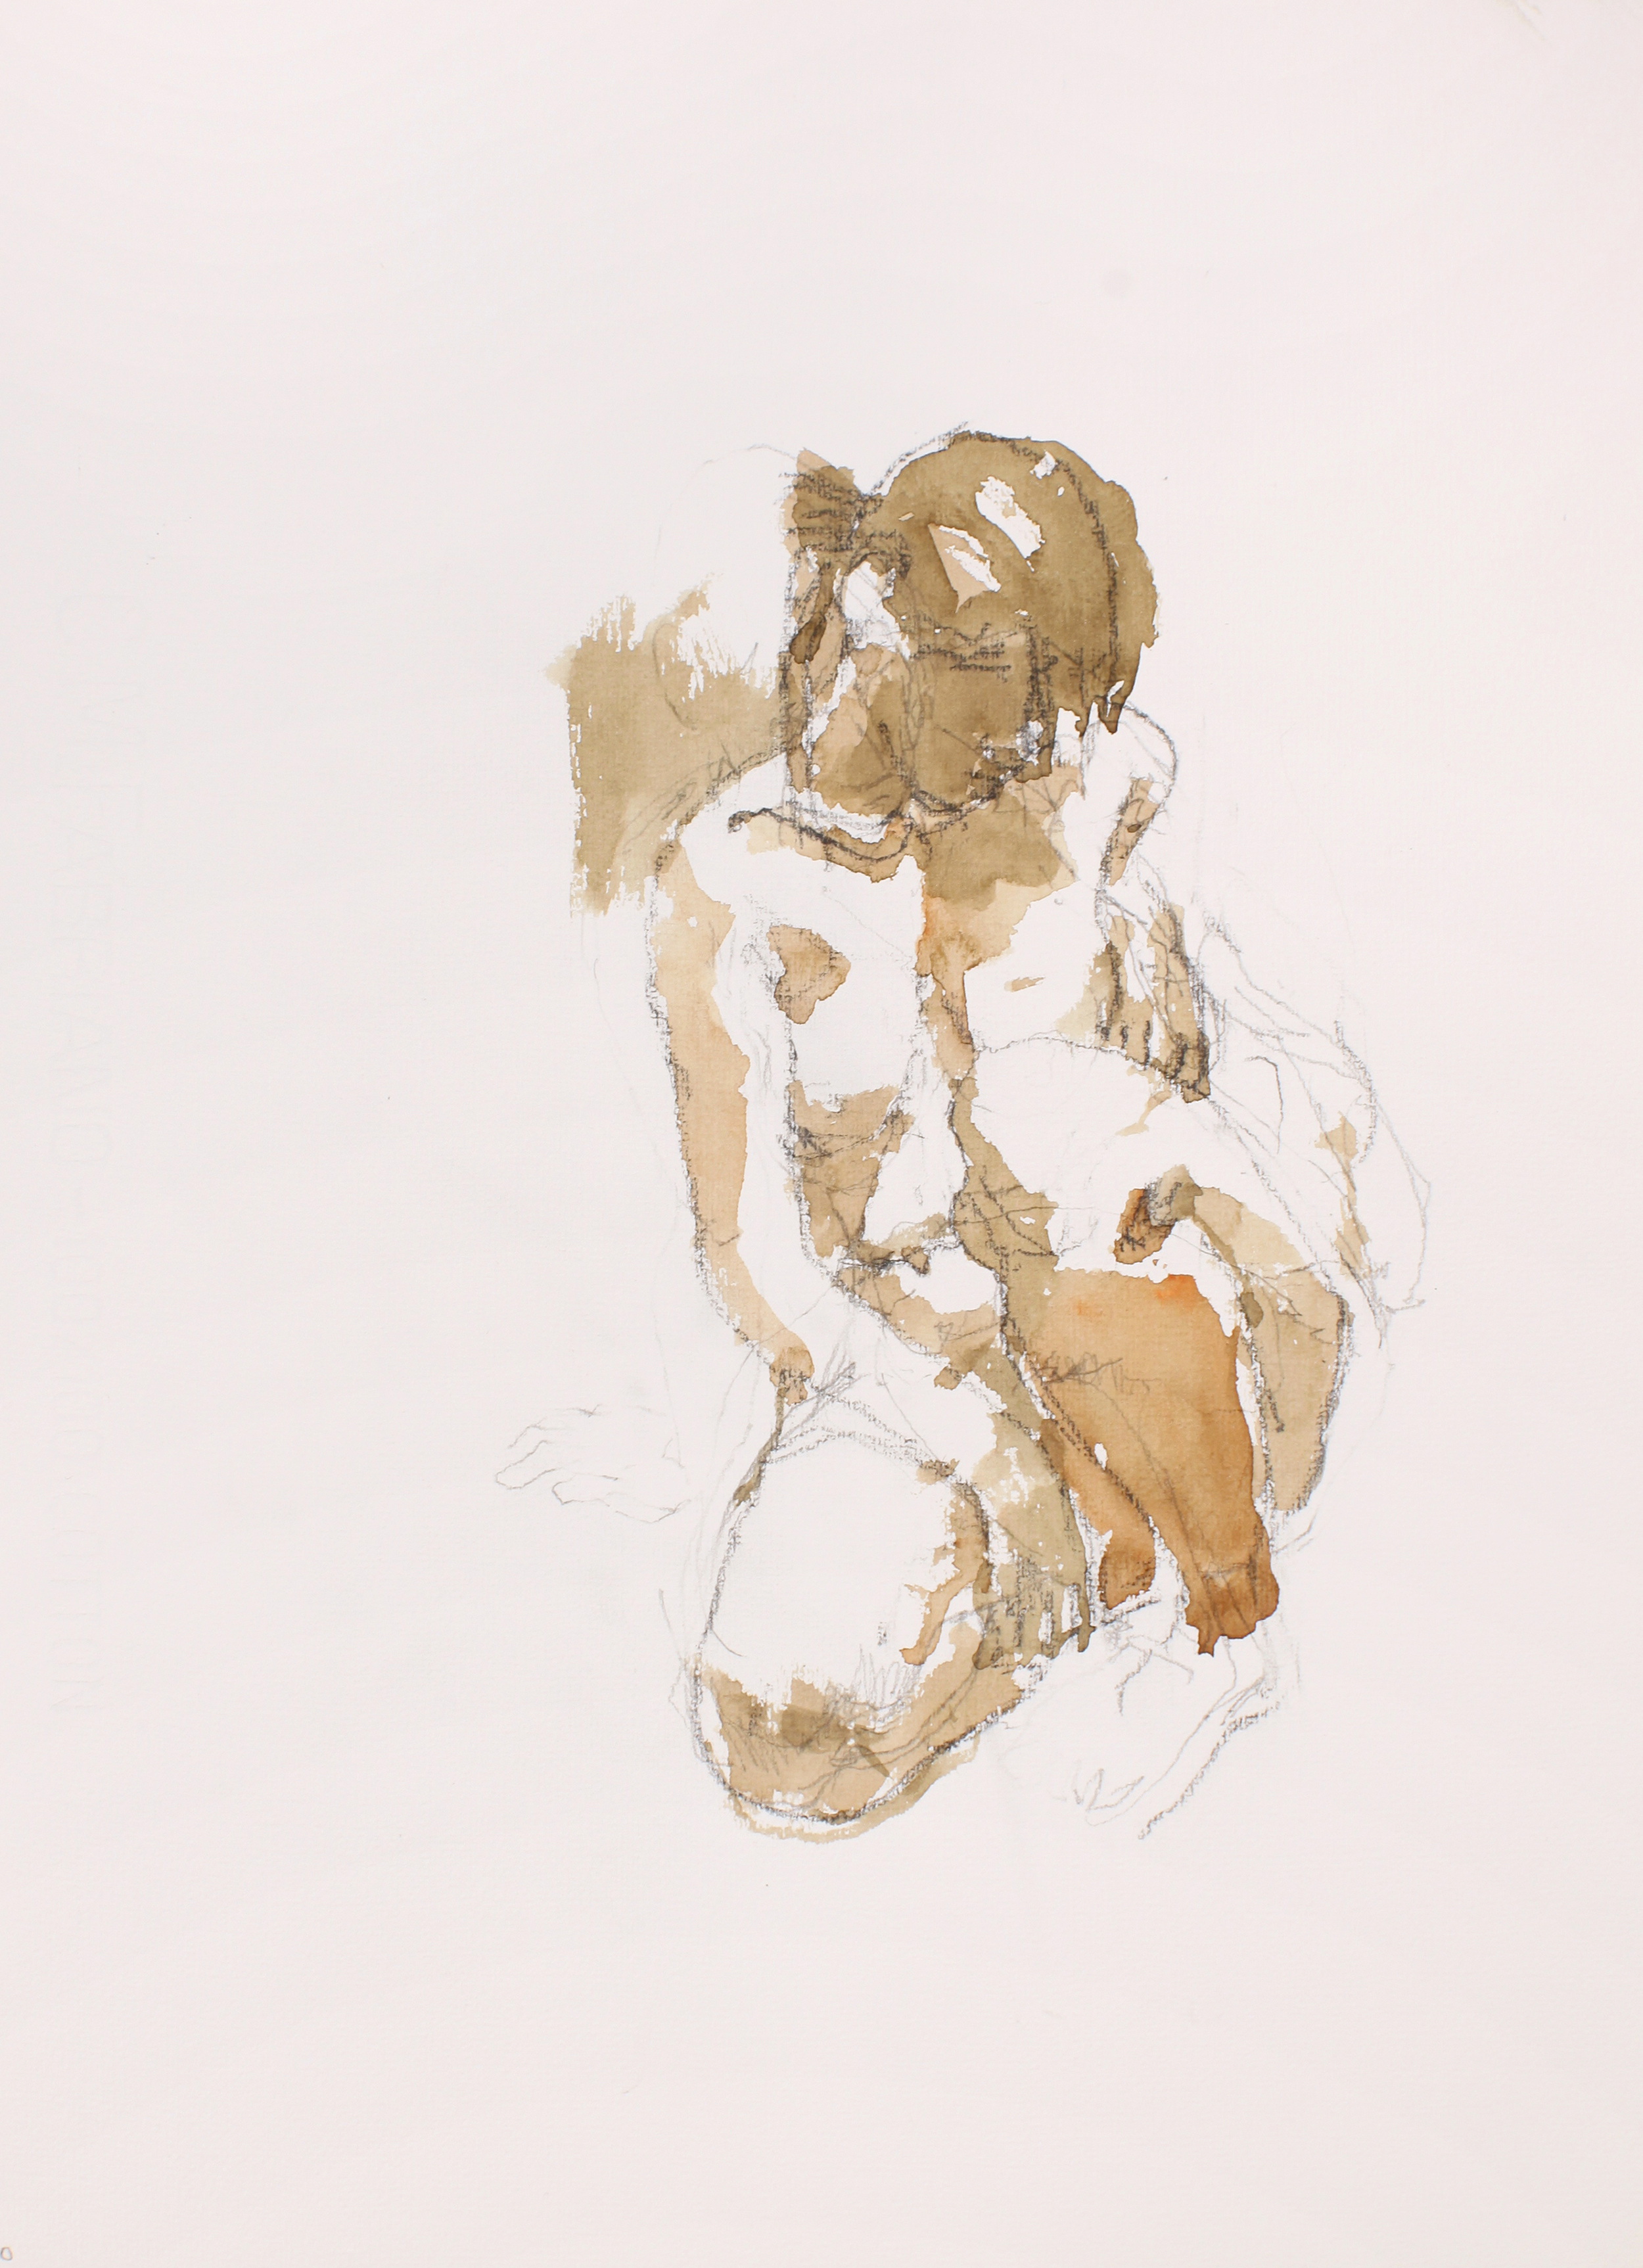 2006_Kneeling_Nude_with_Head_Downwards_watercolour_and_pencil_on_paper_15x11in_WPF492.jpg